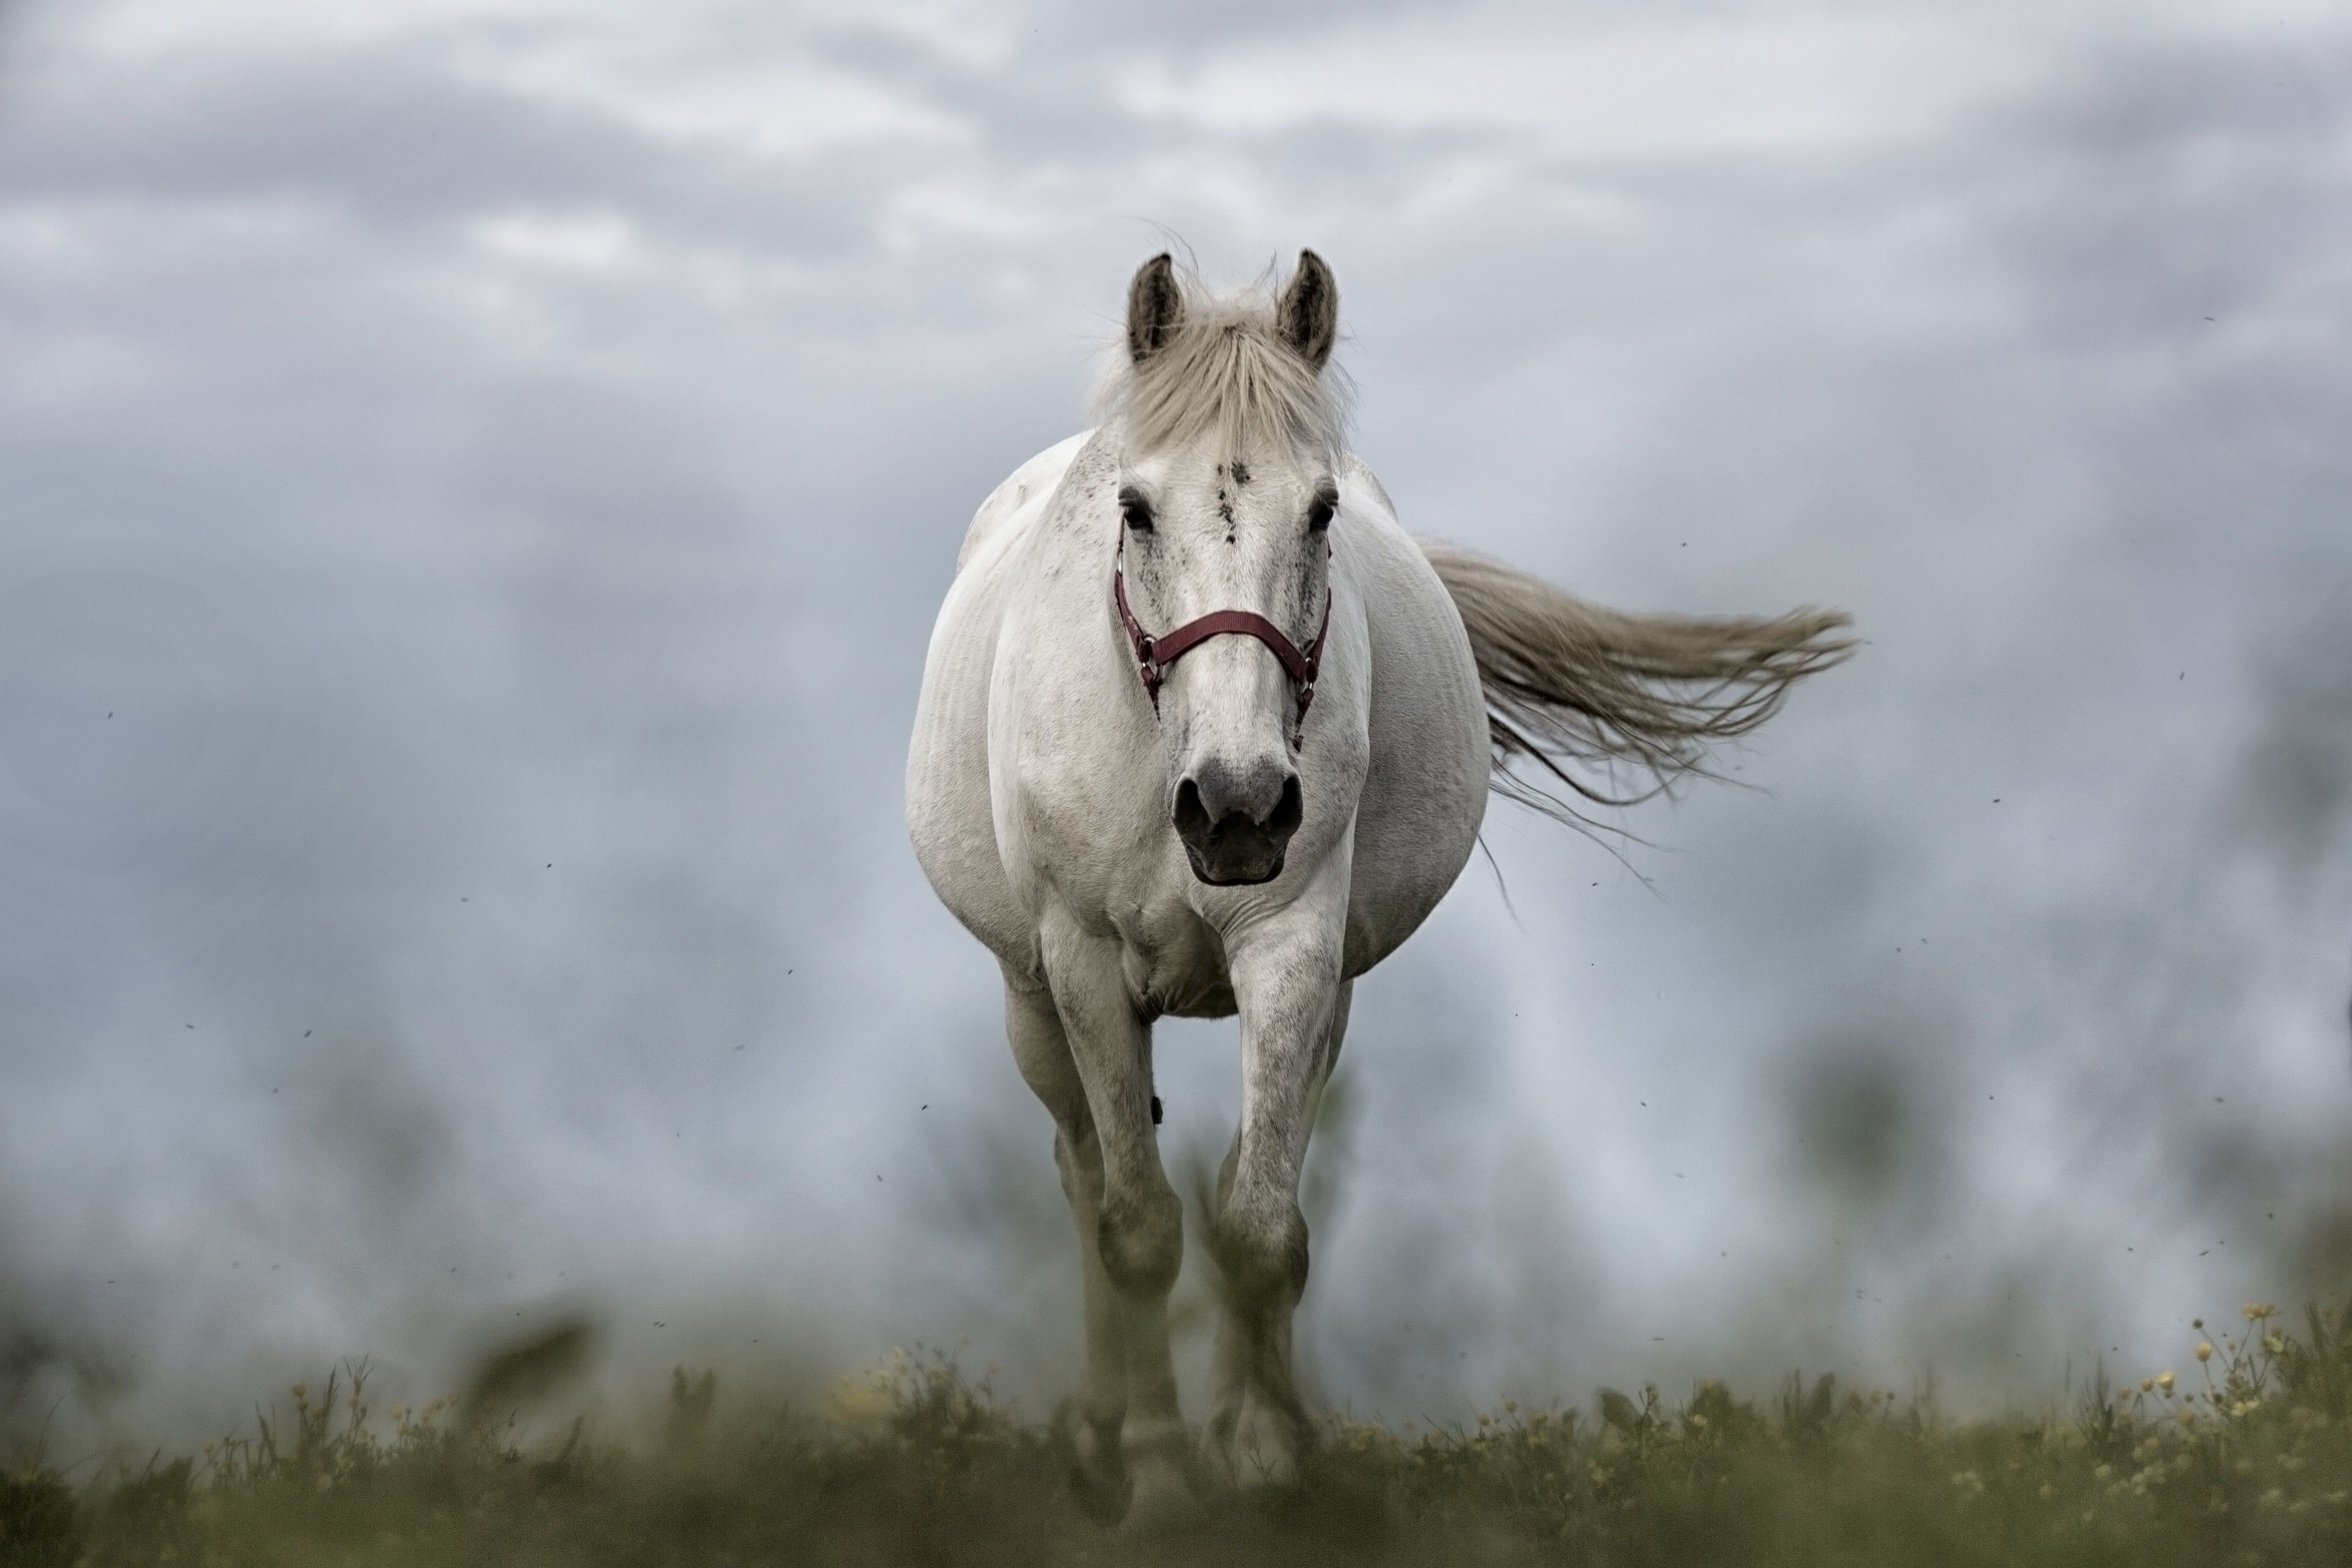 Horse Wallpaper Horse Images White Horse Front View Is Hd Wallpapers Backgrounds For Desktop Or Mobile Device To Find Horse Wallpaper Horses Free Horses